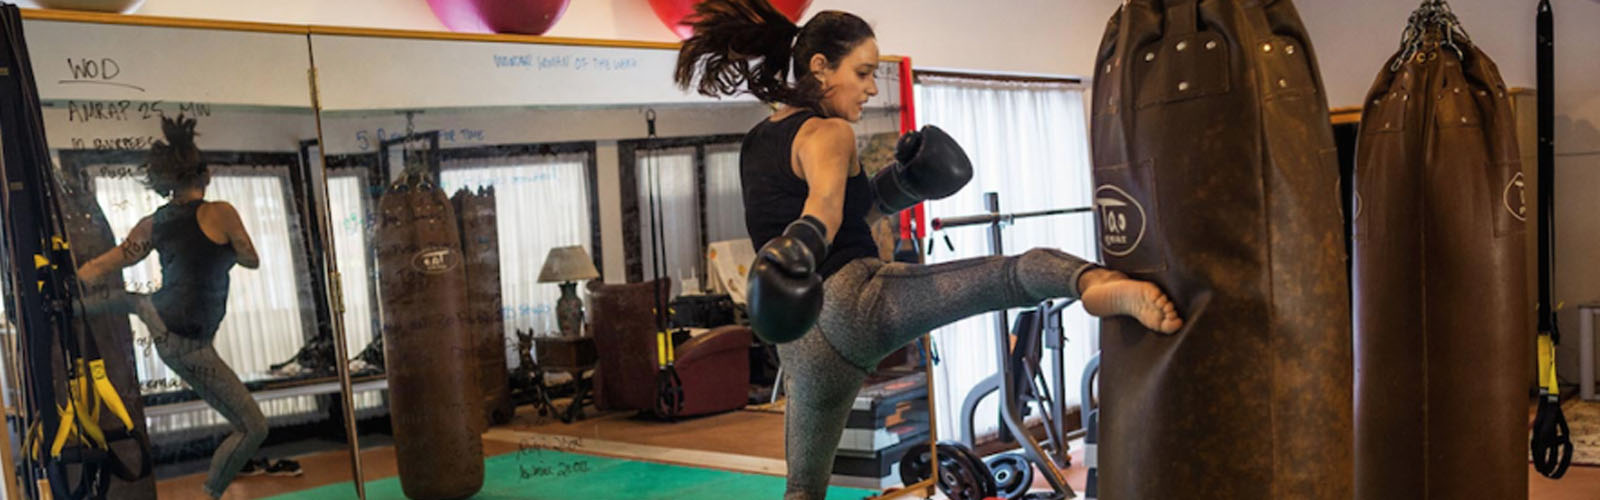 Meet Halah Al-Hamrani, Saudia's only female kickboxing and boxing trainer